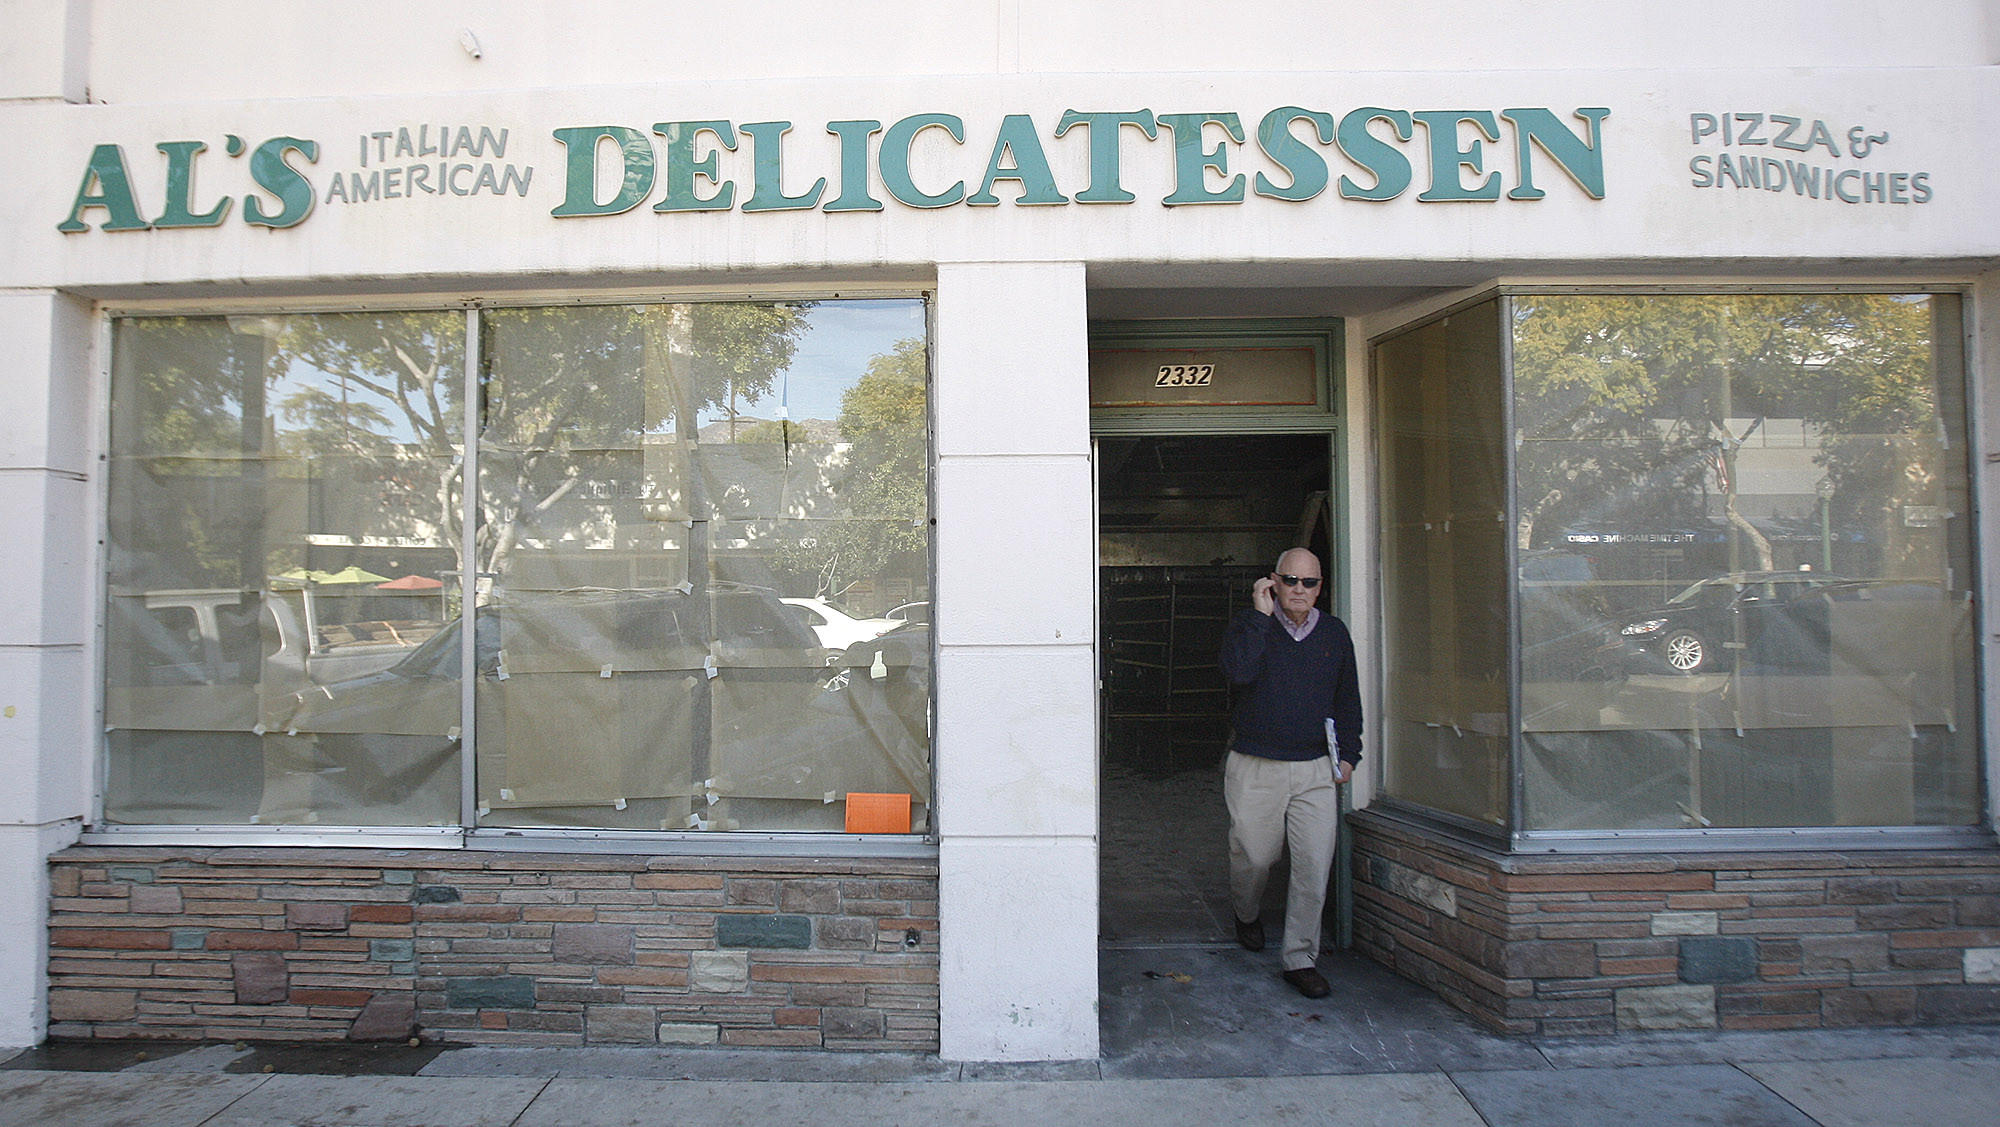 Crescenta Valley Chamber of Commerce President Steve Pierce walks out of the closed Al's Italian American Delicatessen in Montrose on Monday, Jan. 13, 2014. Pierce was checking out the progress of the construction for the restaurant that will re-occupy the vacancy.